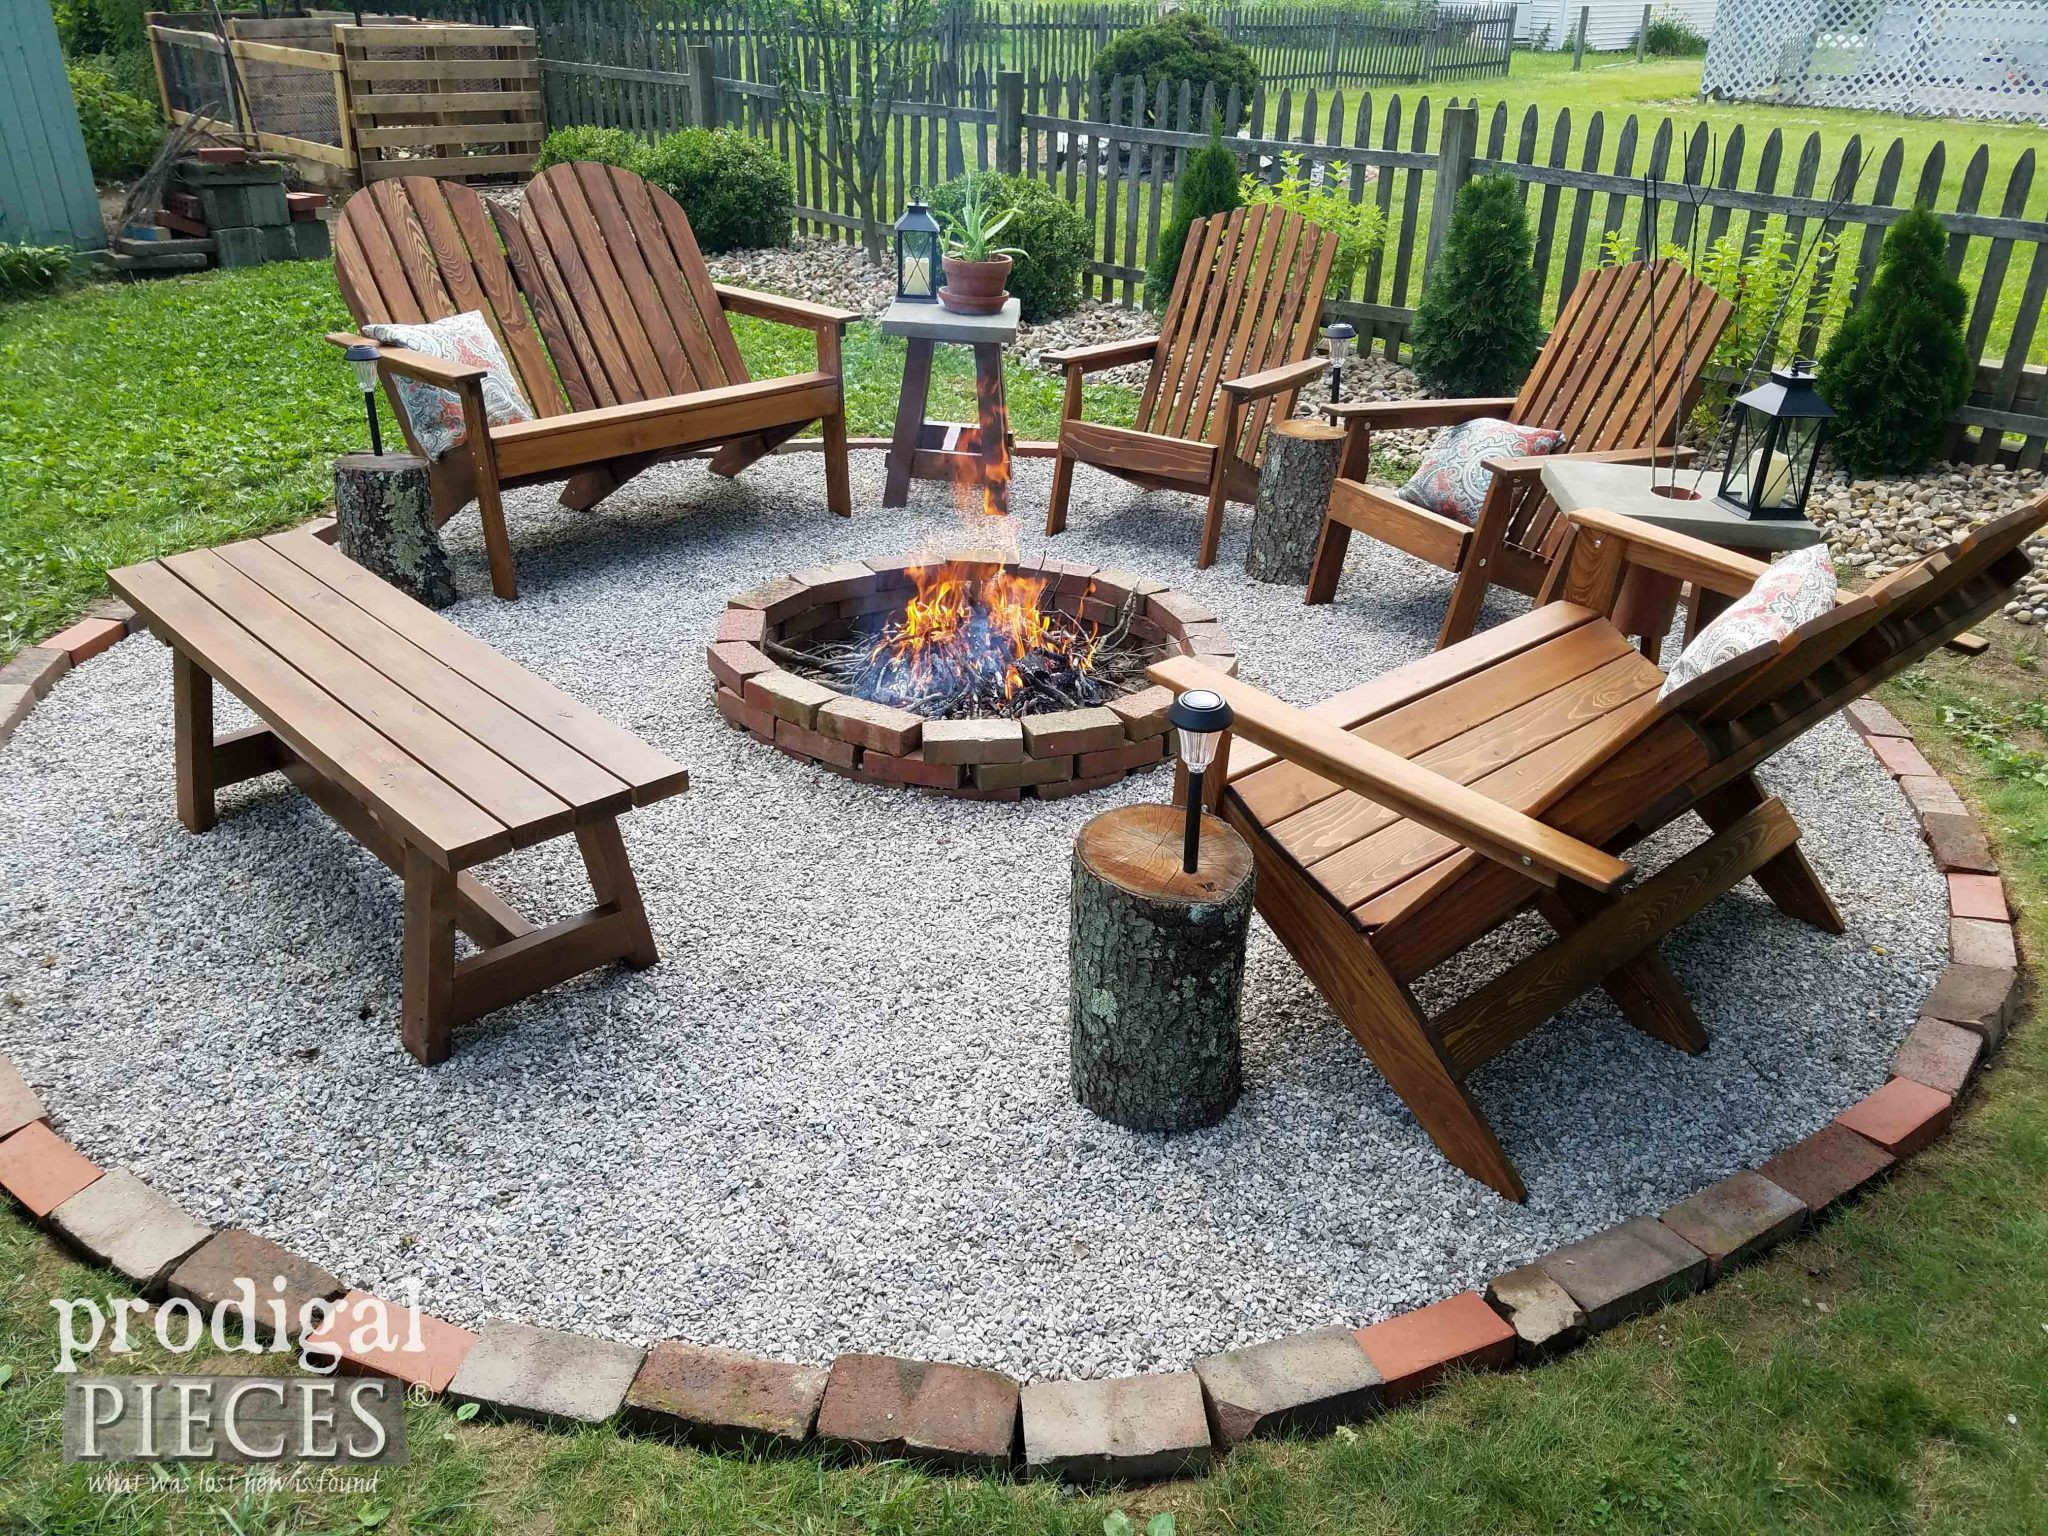 Best ideas about Backyard Fire Pit . Save or Pin DIY Fire Pit Backyard Bud Decor Glamper ideas Now.